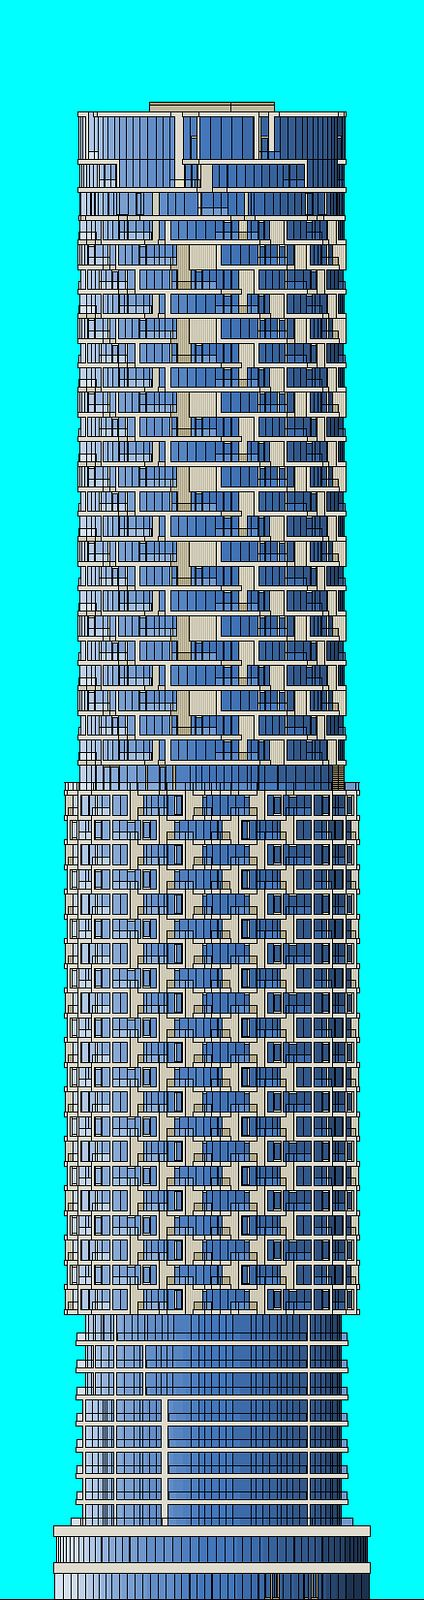 The Shard Baby 1998's Flickr | Wood Wharf A1 Building HD South elevation diagram | Drawn on Microsoft Paint 2007.